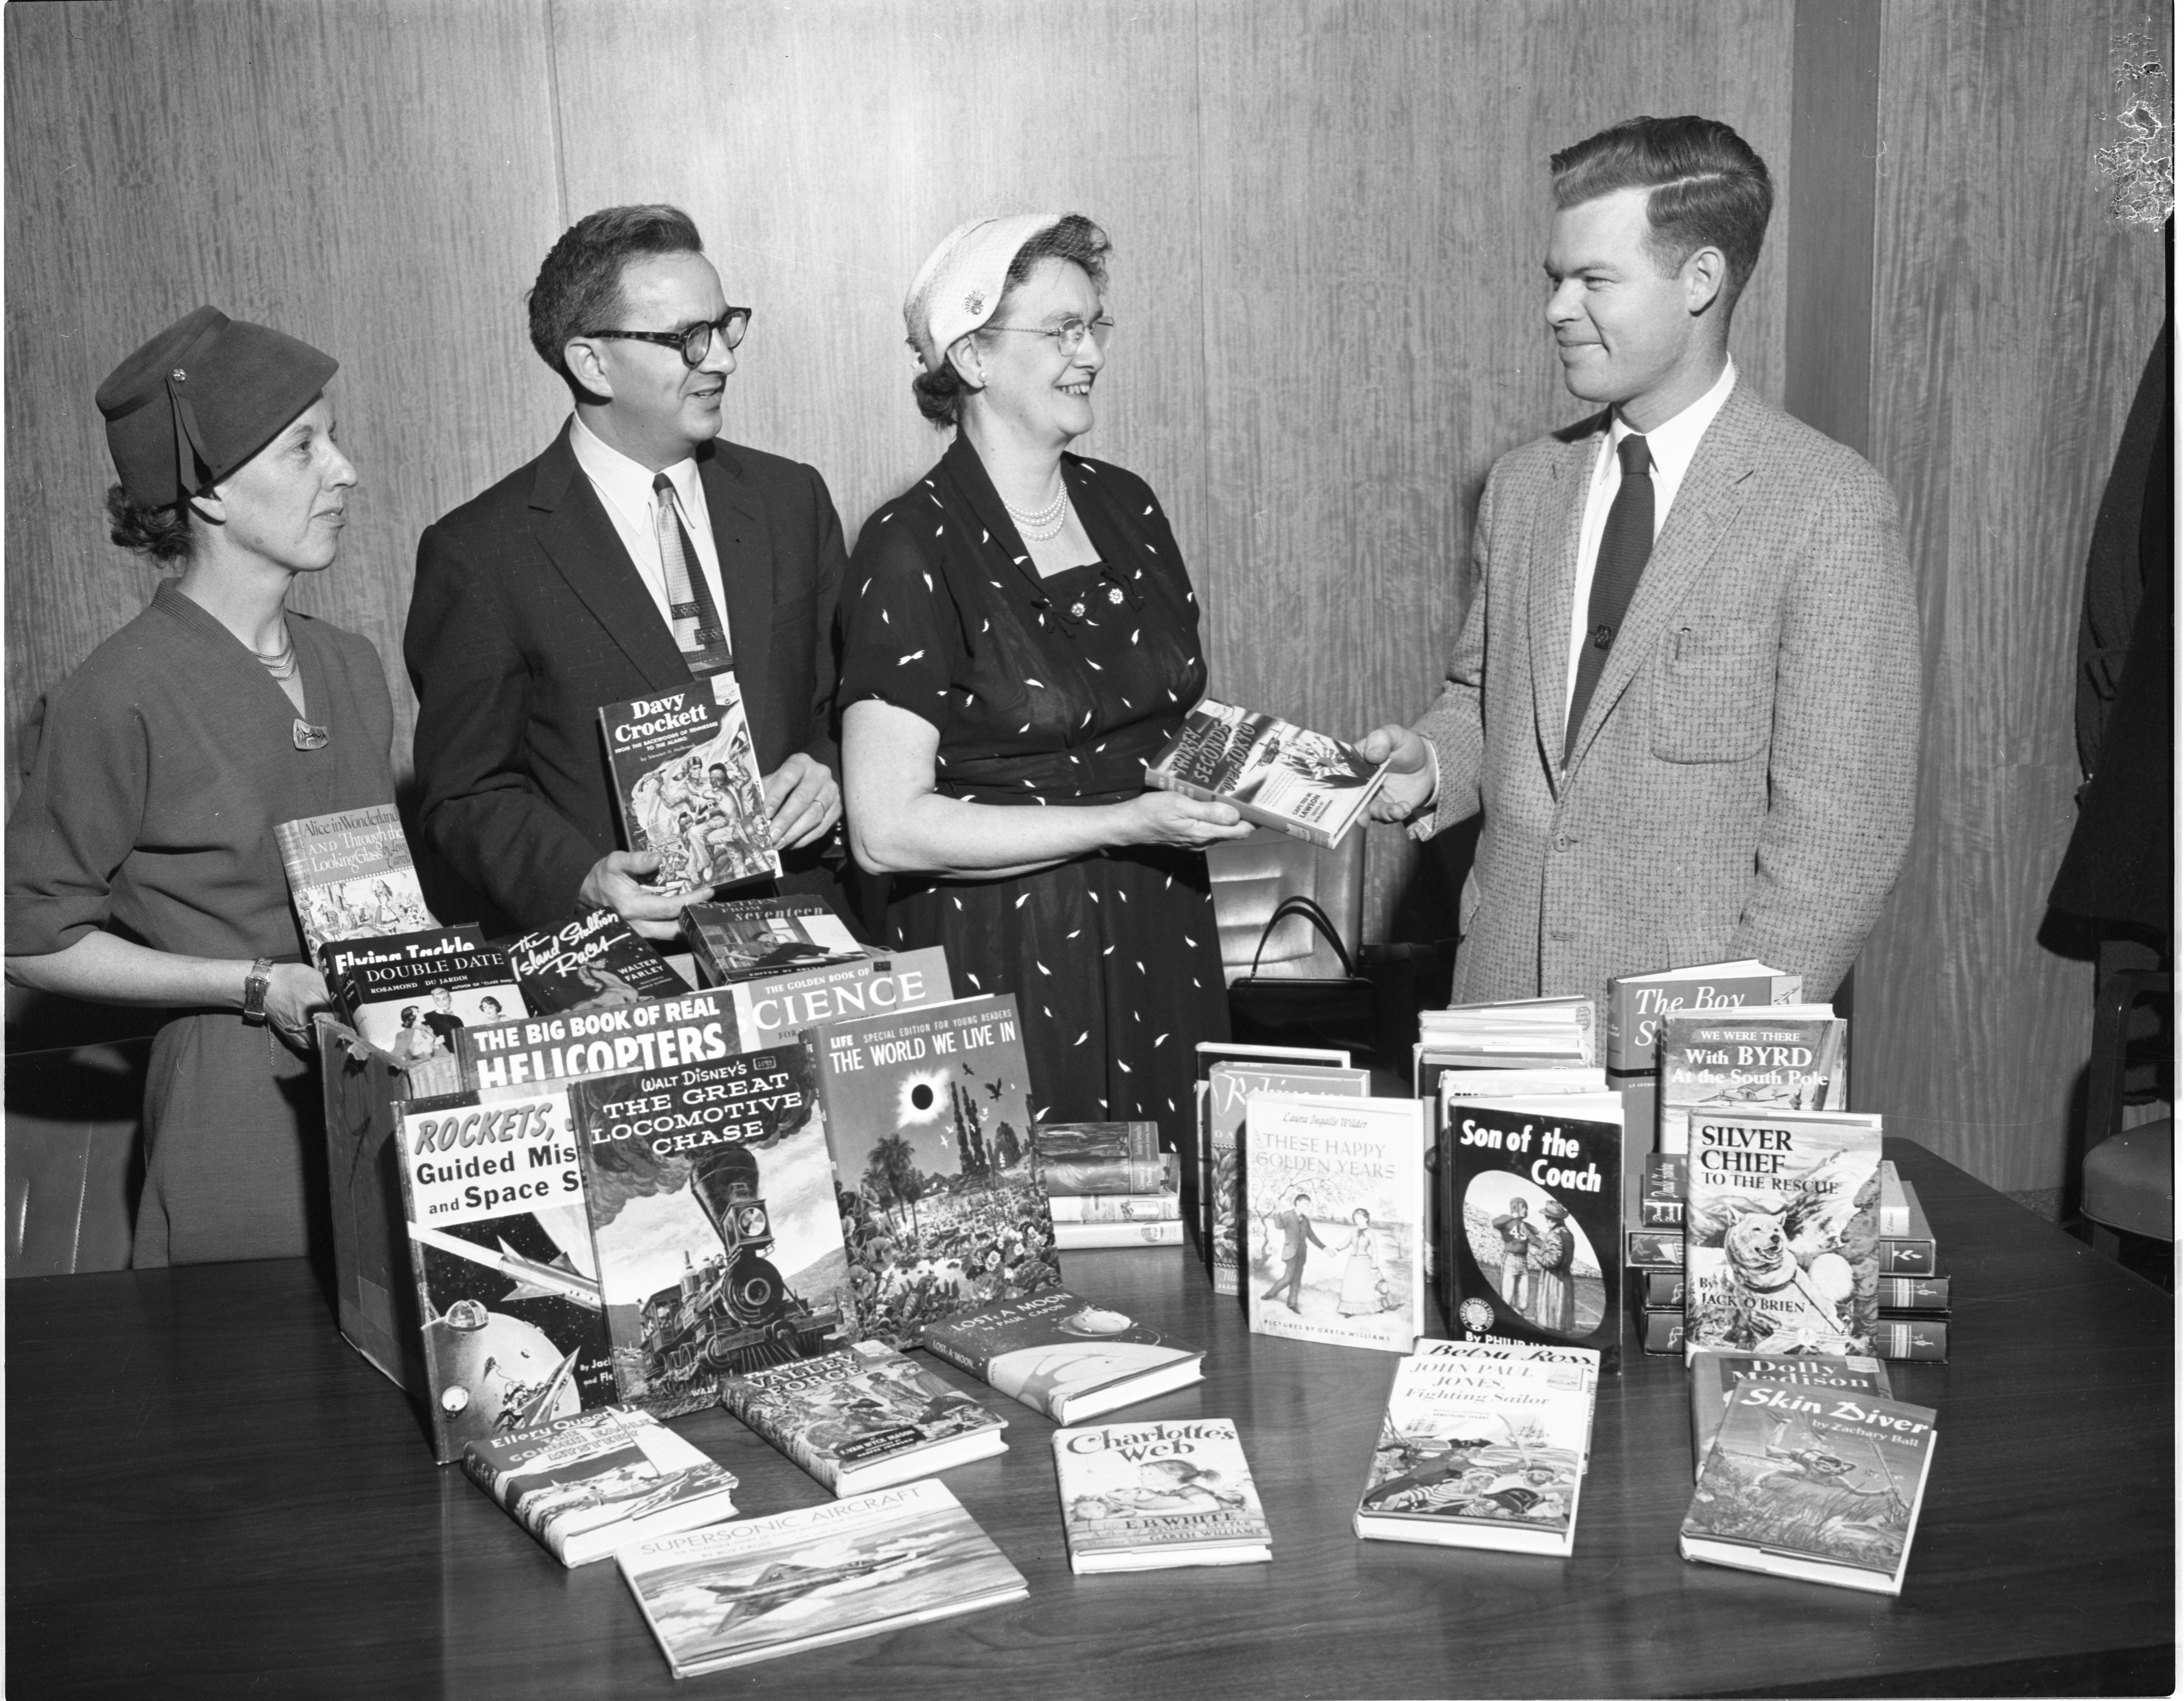 Libraries Donate Books To Washtenaw County Juvenile Home, January 1957 image